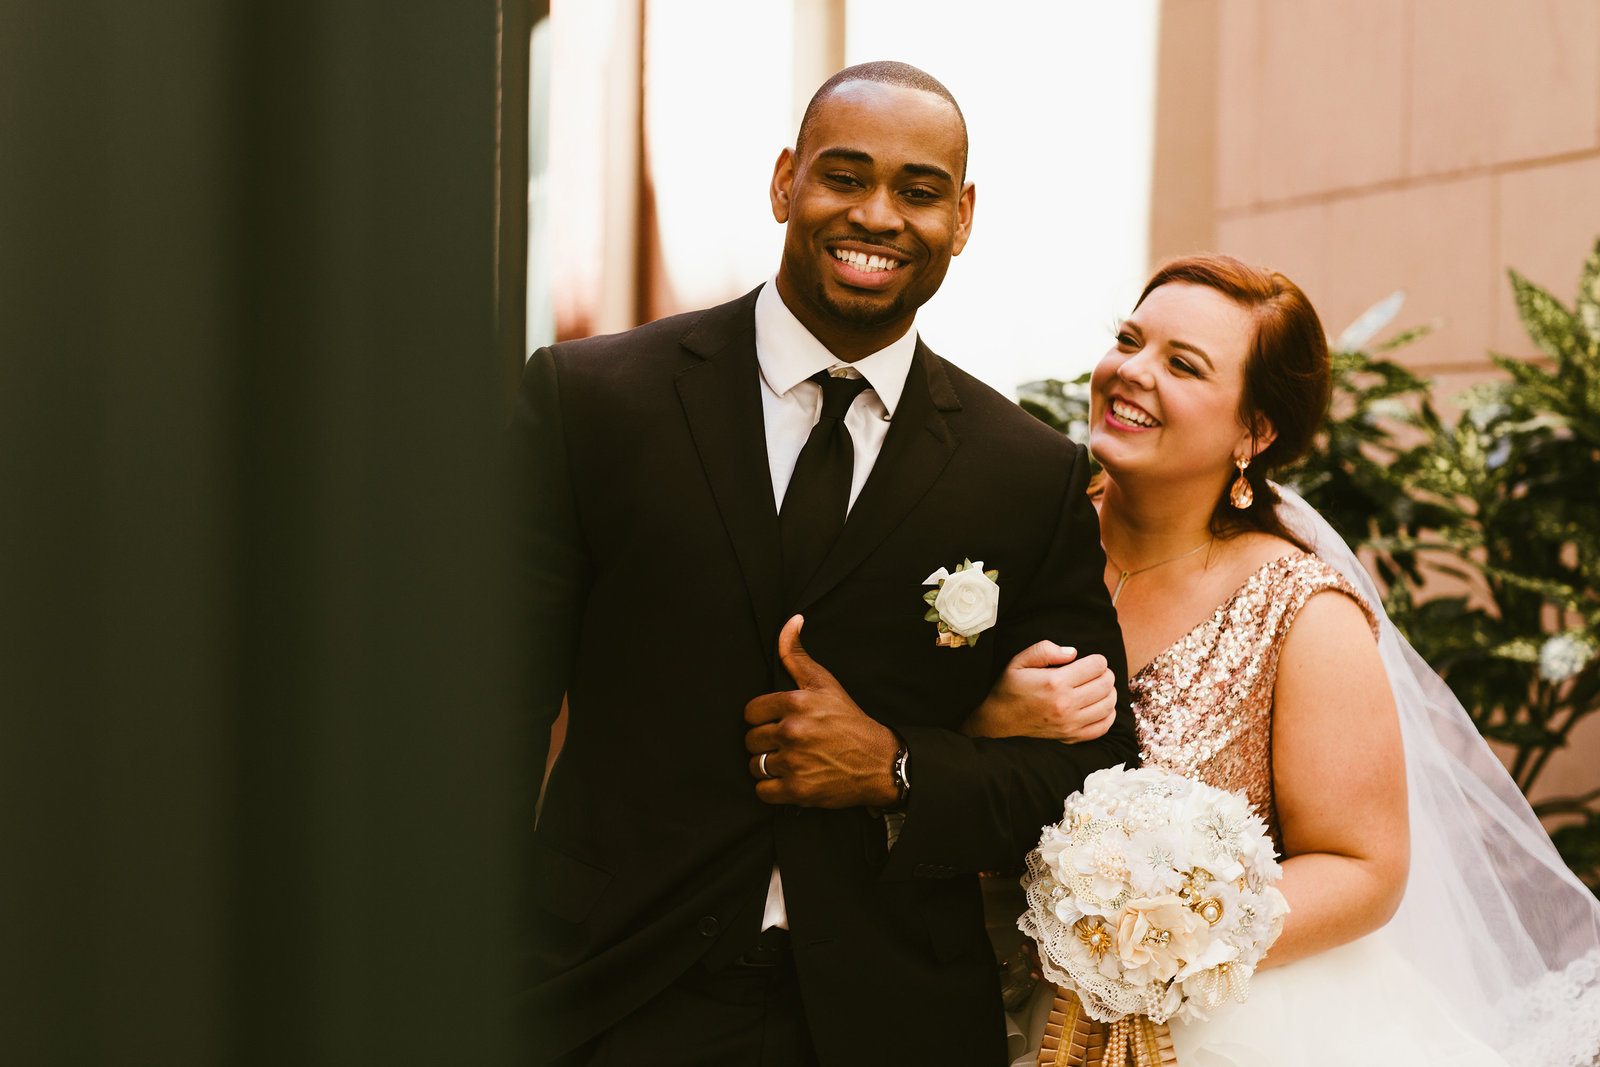 groom in black tuxedo and bride in pink sequined wedding gown smiling together at their Memphis wedding